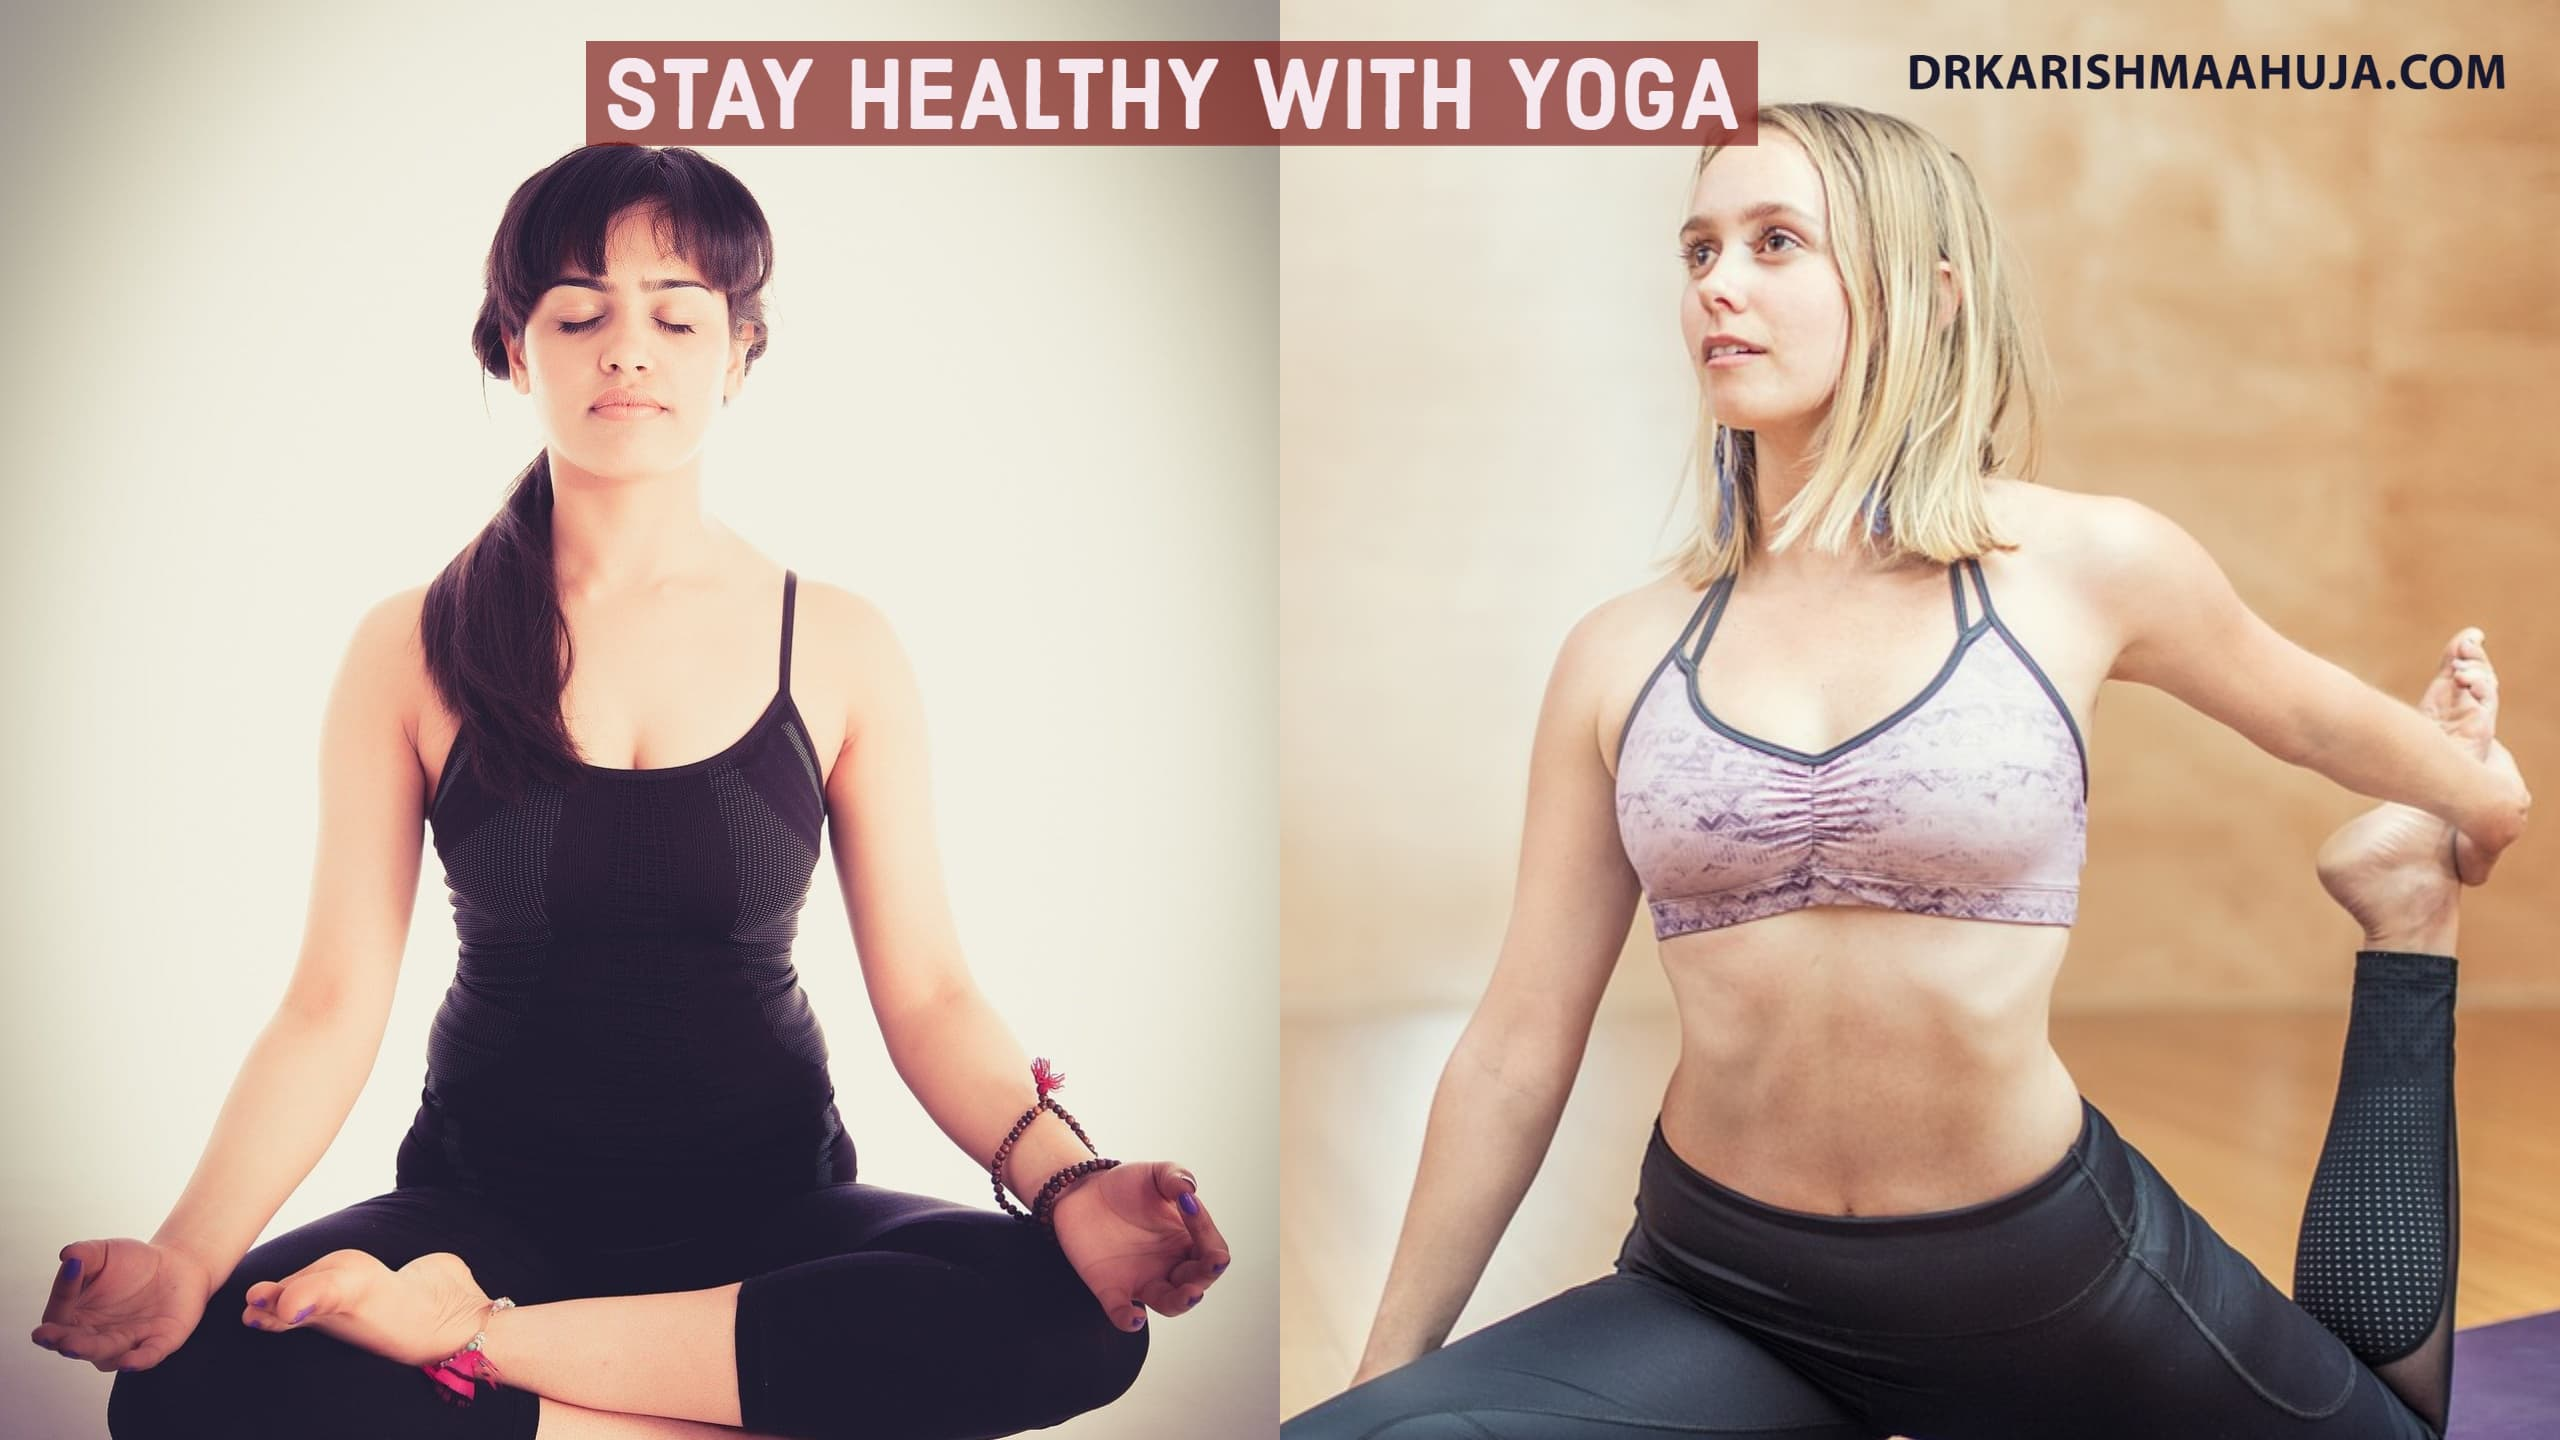 Stay Healthy with Yoga